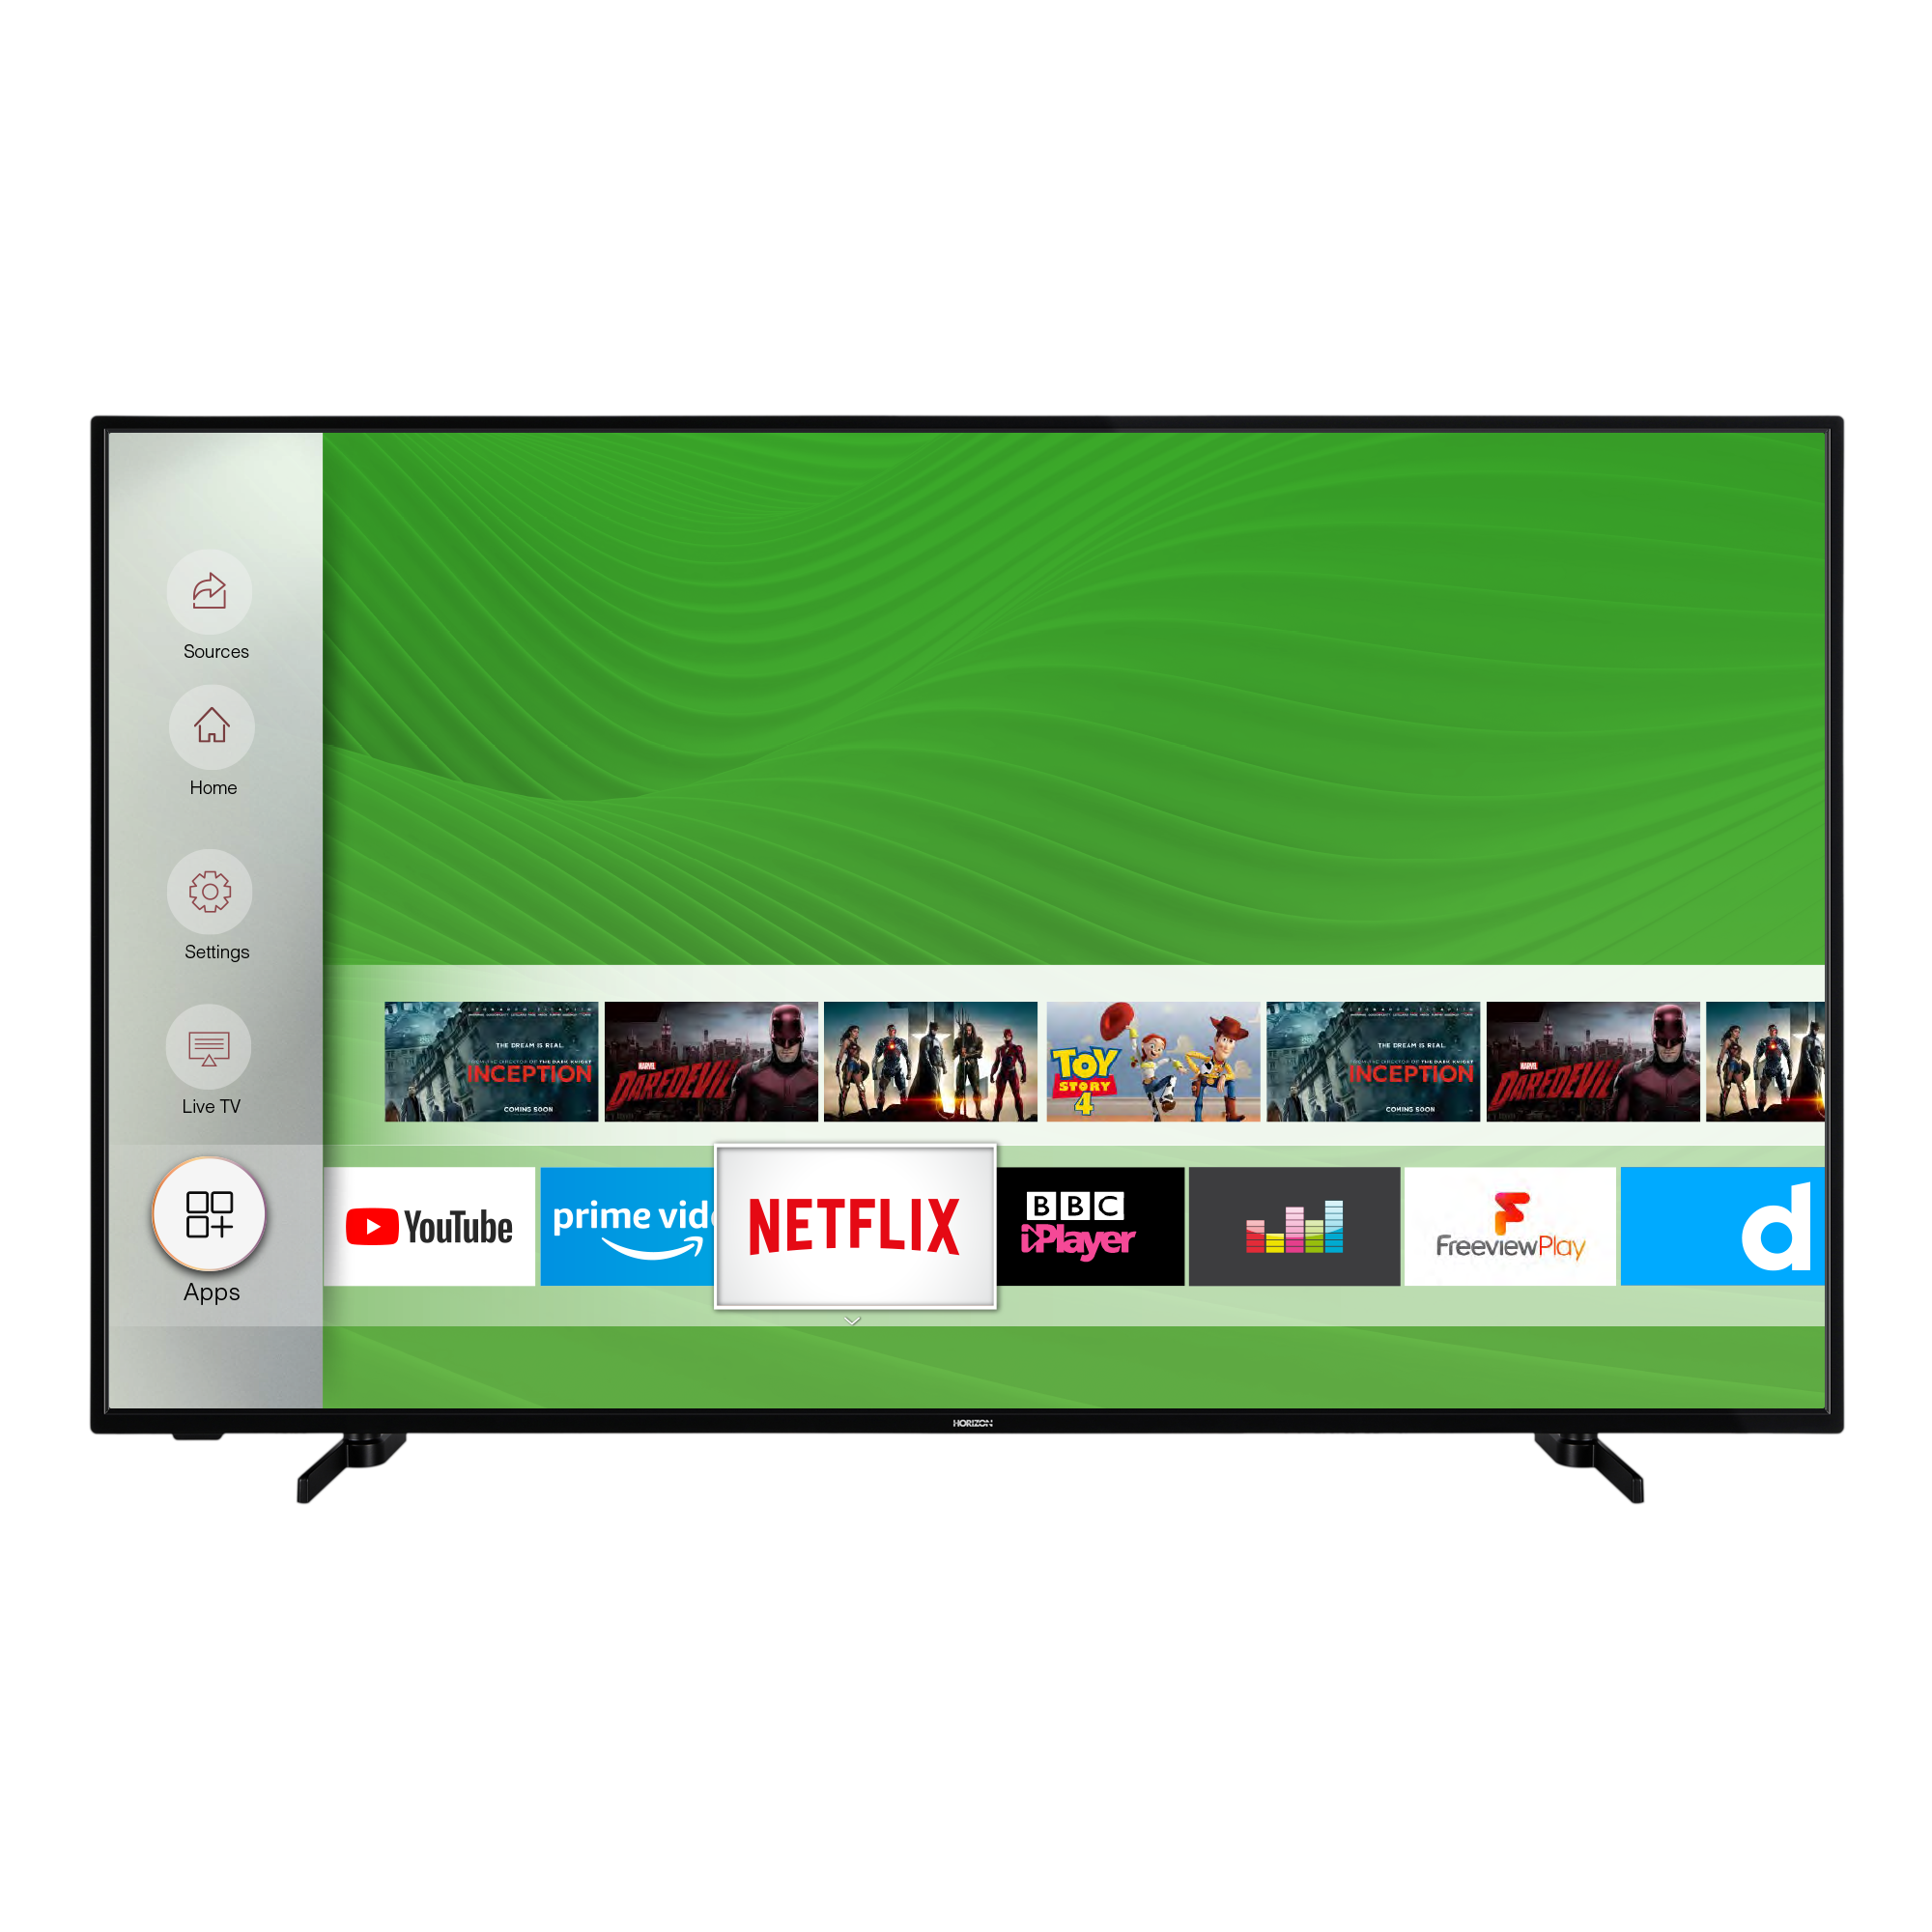 Televizor Horizon 58HL7530U, 146 cm, Smart, 4K Ultra HD, LED